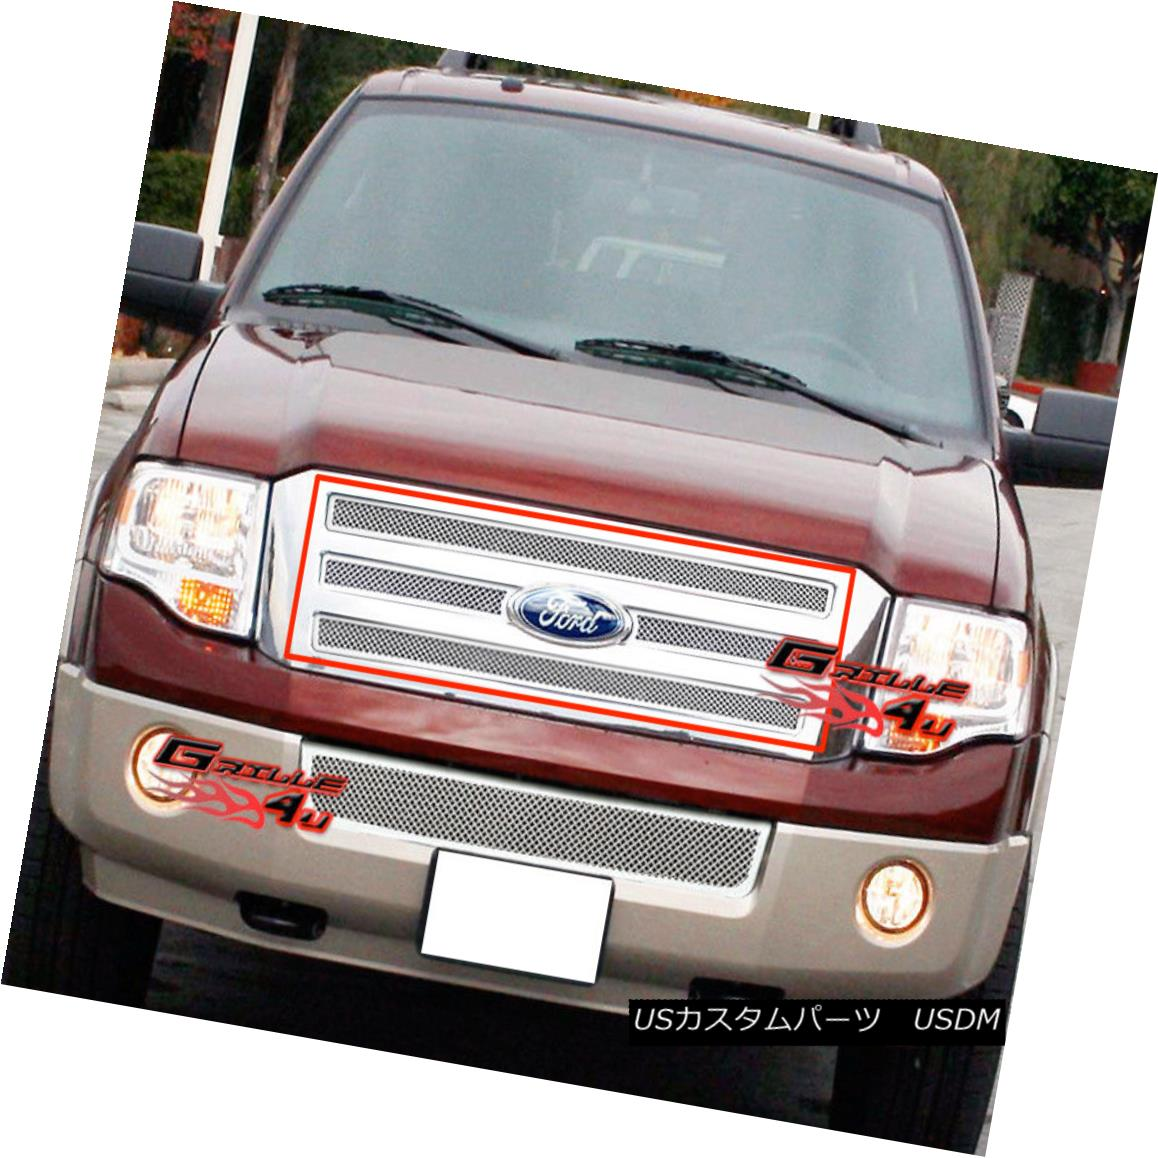 グリル For 2007-2014 2007-2014 Ford Expedition Insert Stainless Steel Mesh Grille For Grill Insert 2007?2014年Ford Expeditionステンレスメッシュグリルグリルインサート, 本家屋:4775e9ee --- knbufm.com